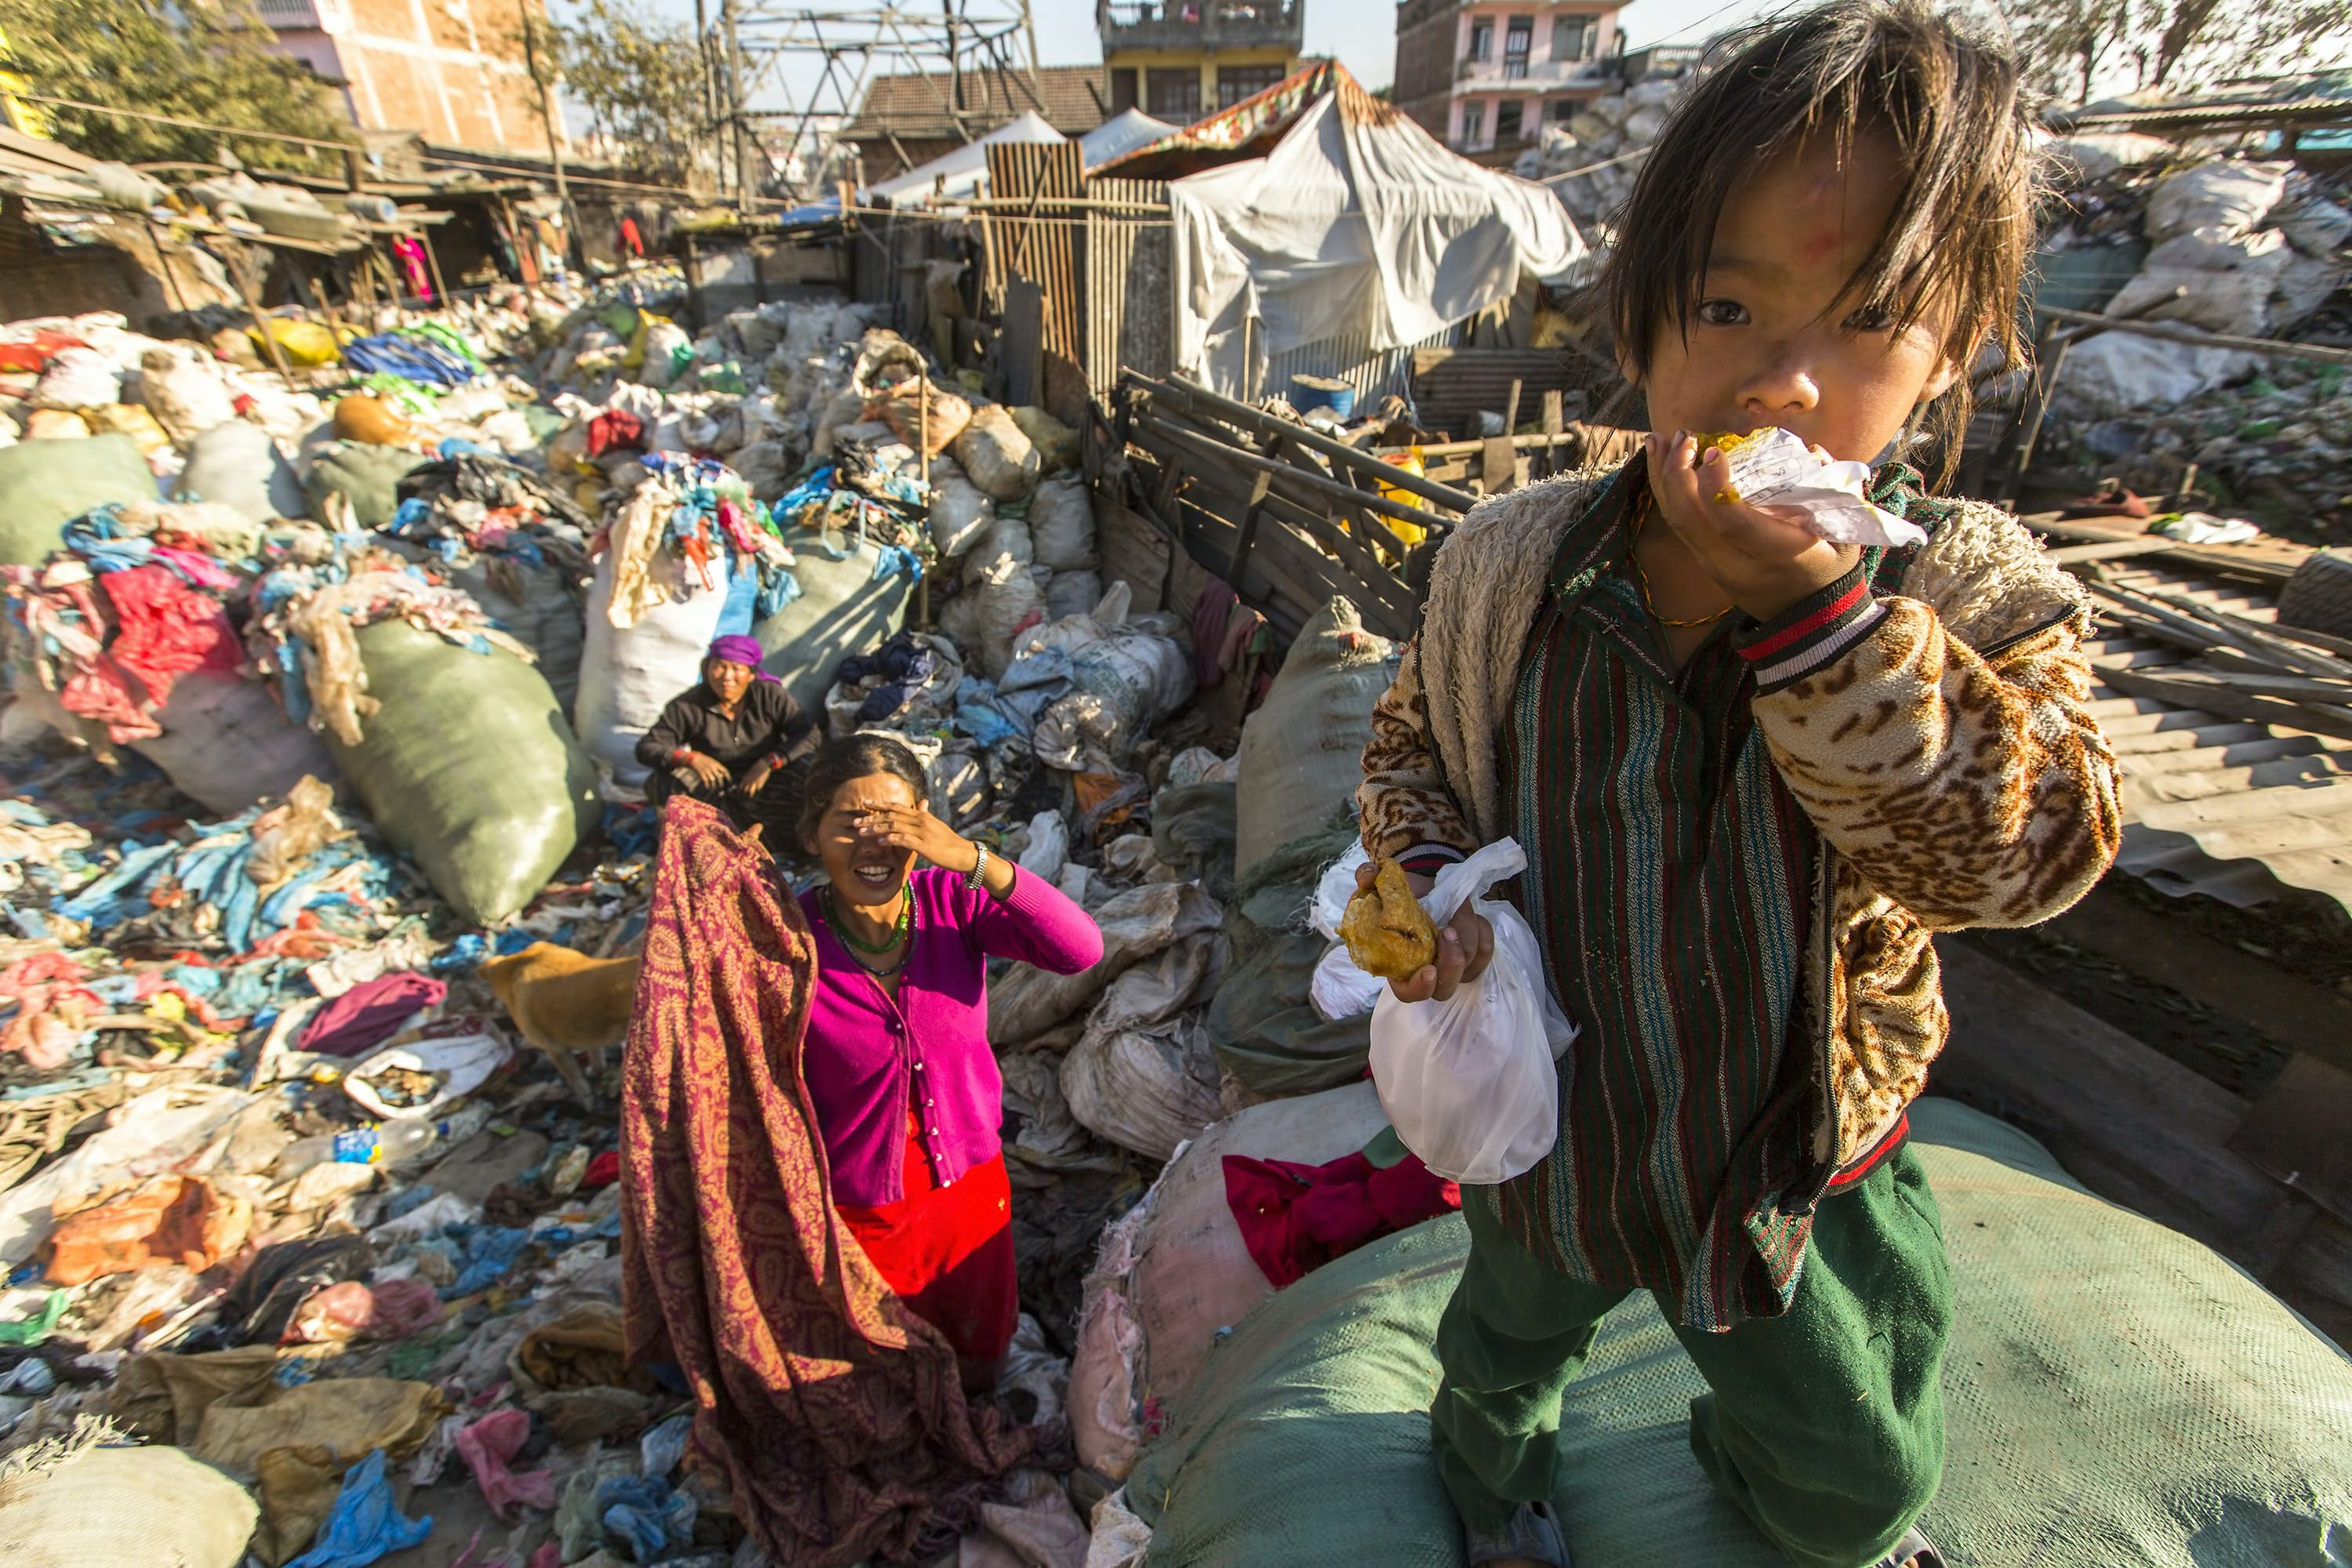 Child living in extreme poverty eating a morsel in a heavily-polluted town